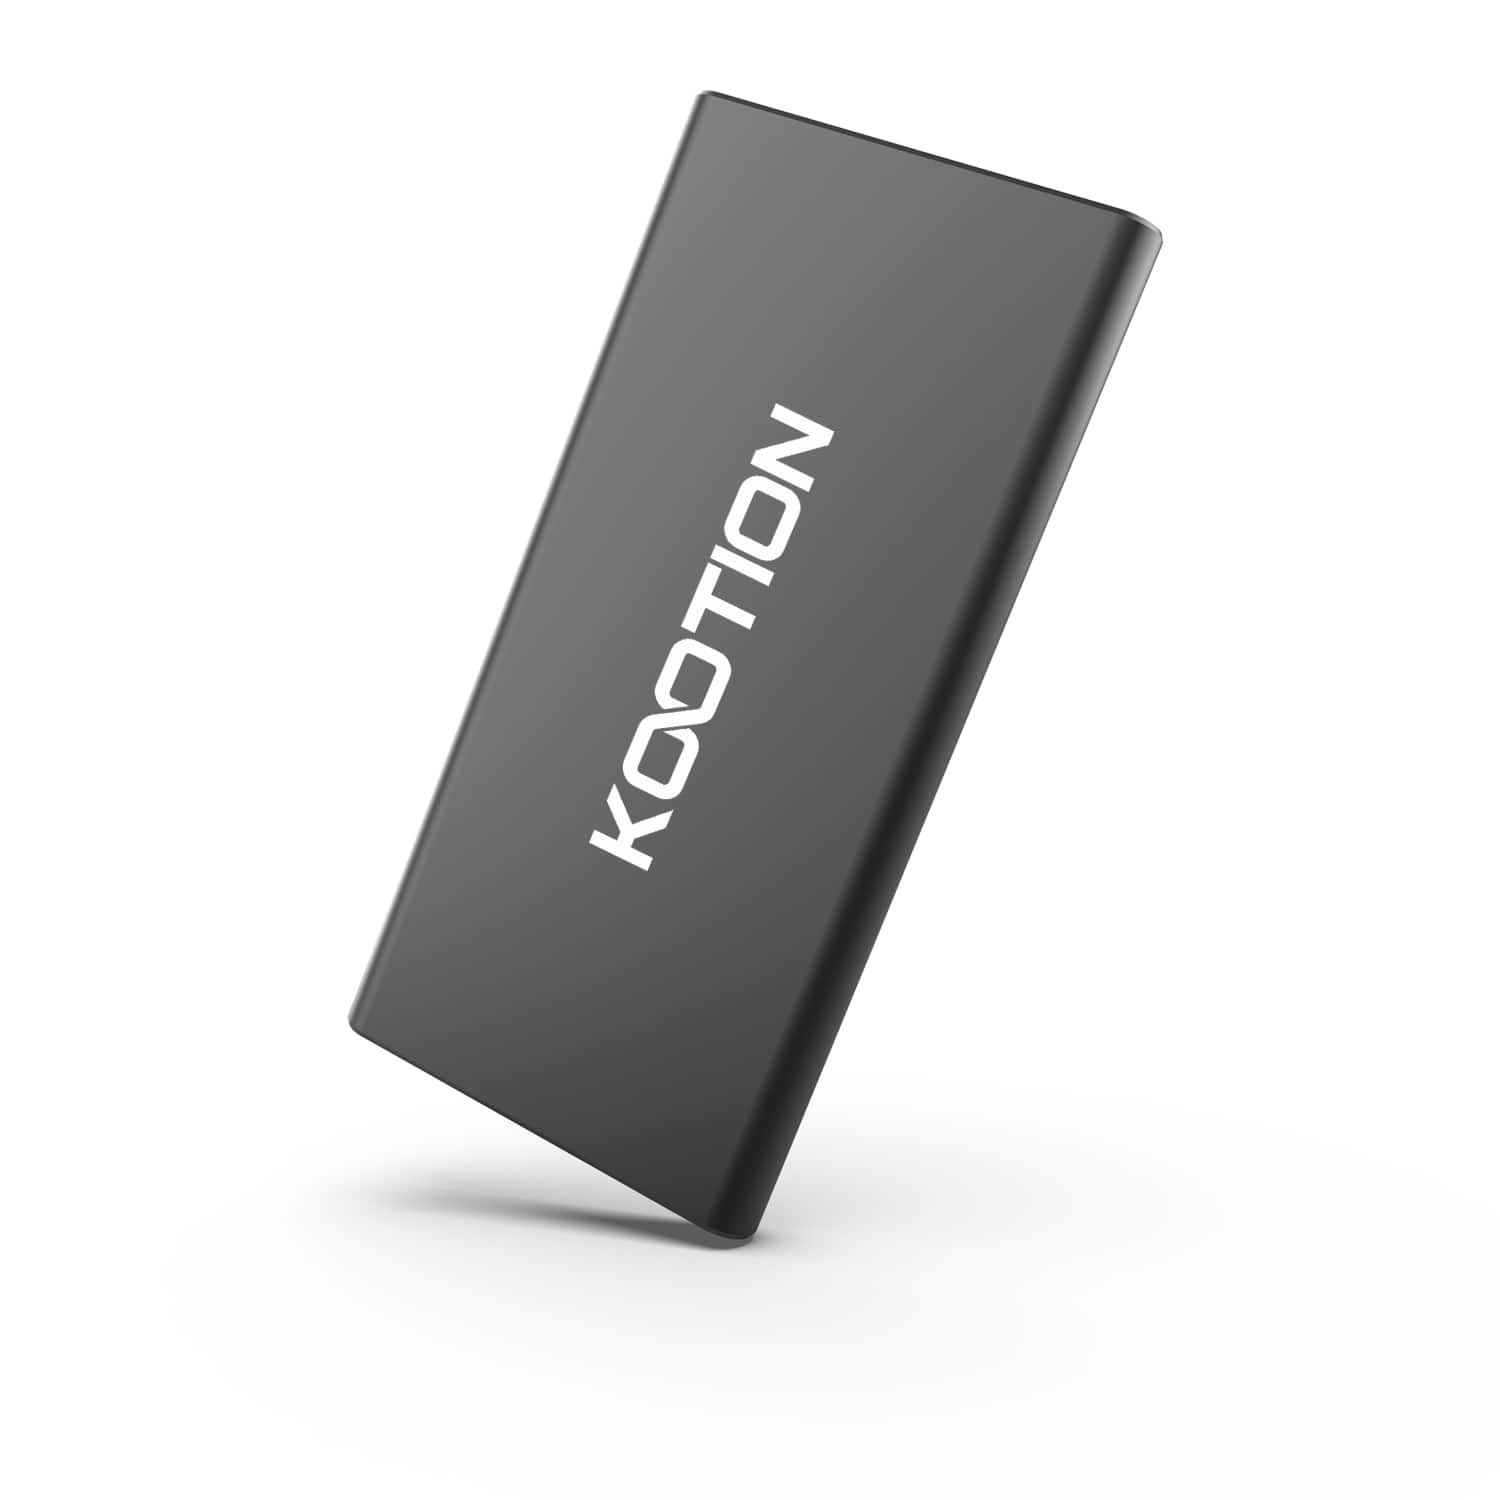 500G Portable External SSD USB 3.0 High Speed Read & Write up to 400MB/s & 300MB/s $65.99